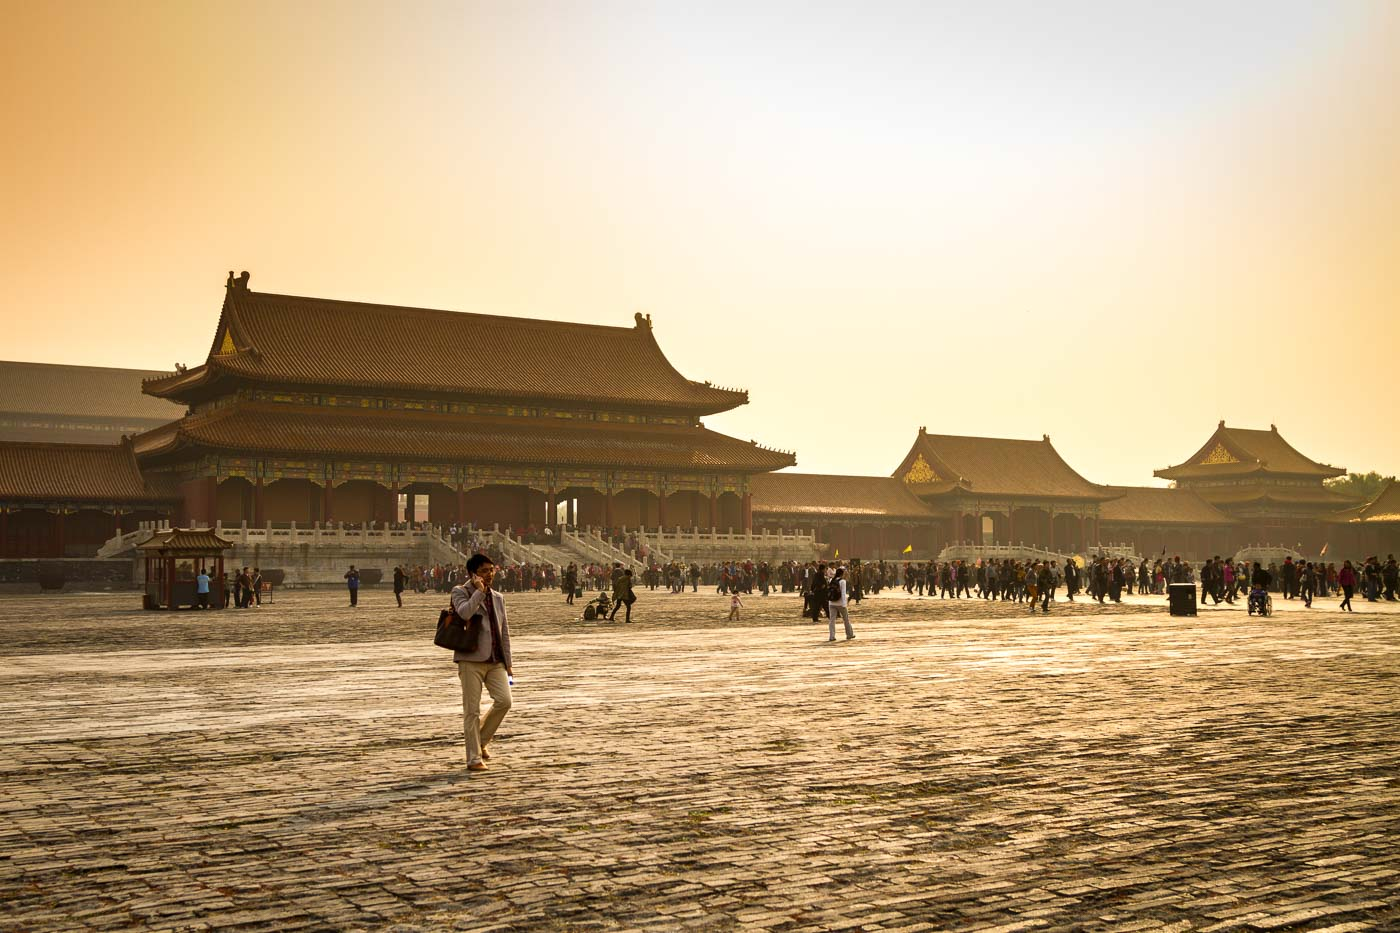 The Forbidden City in Beijing, China. Taken handheld while *ahem* creatively managing conference attendance - what's a 45' semi-jog to get some photos? I know I said you should skip popular monuments but take that with a pinch of salt!